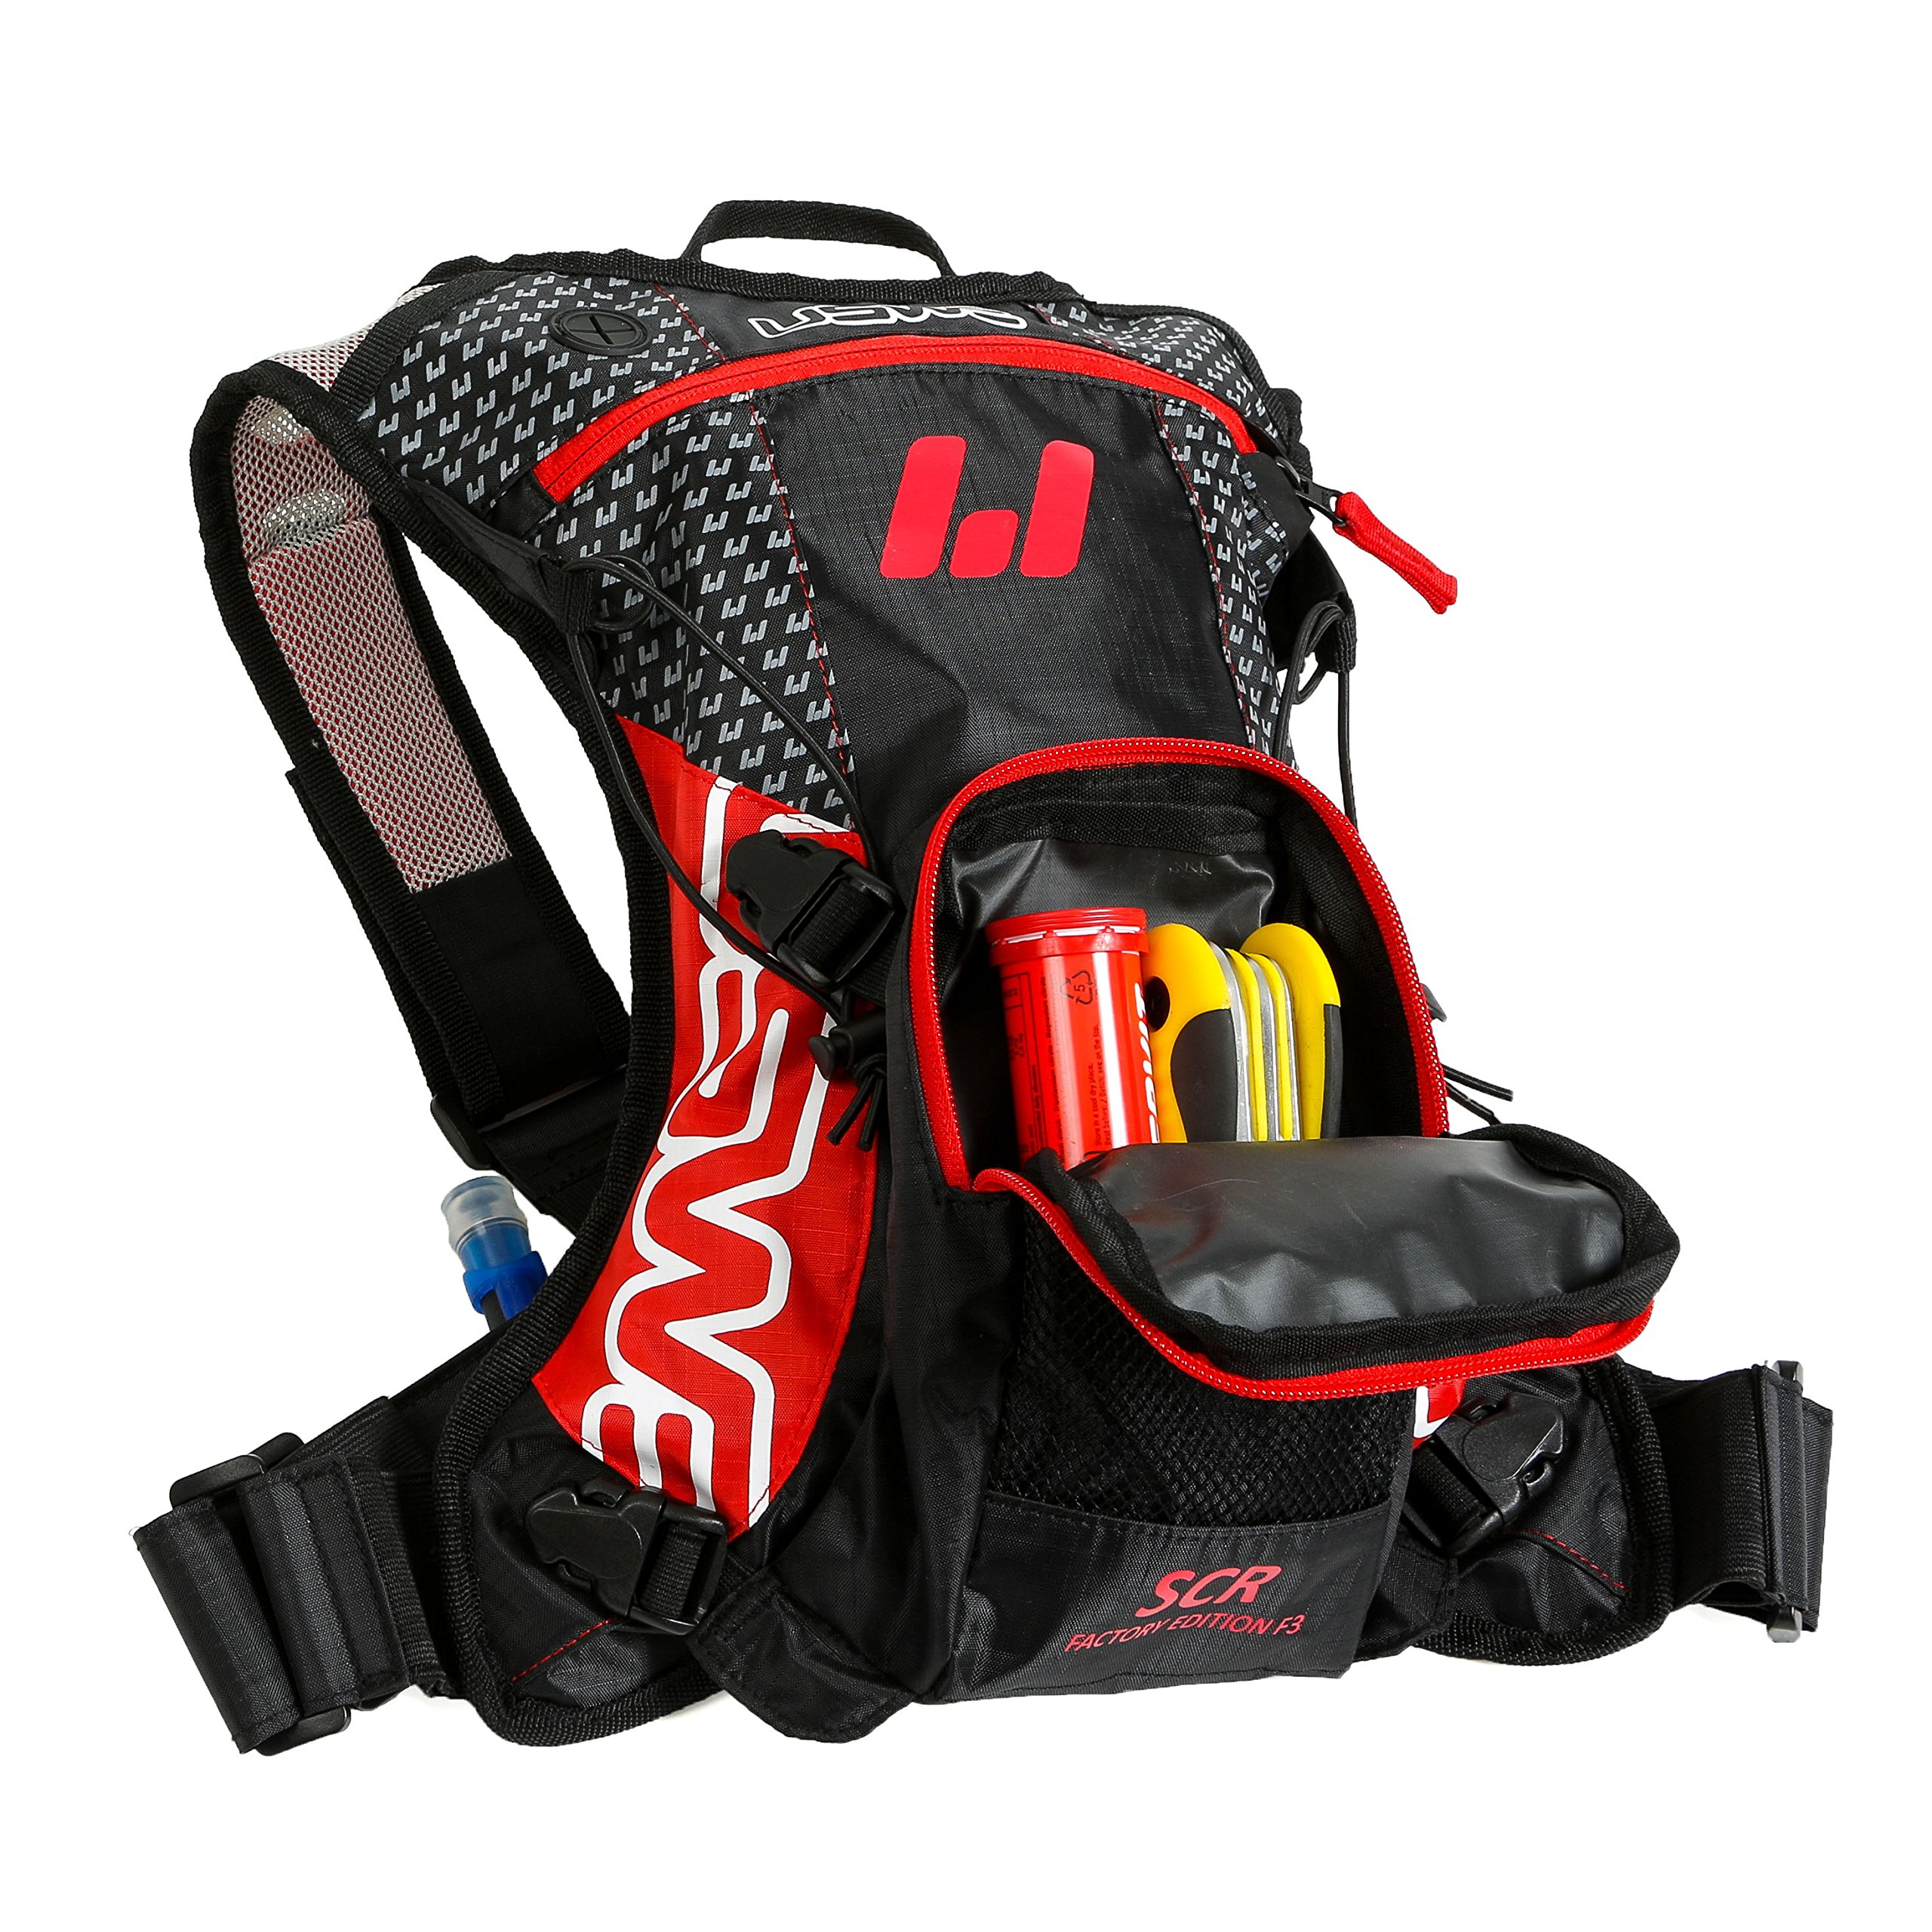 USWE 201201 F3 Hydration Pack With 2L Shape-N-Shift Hydration by USWE